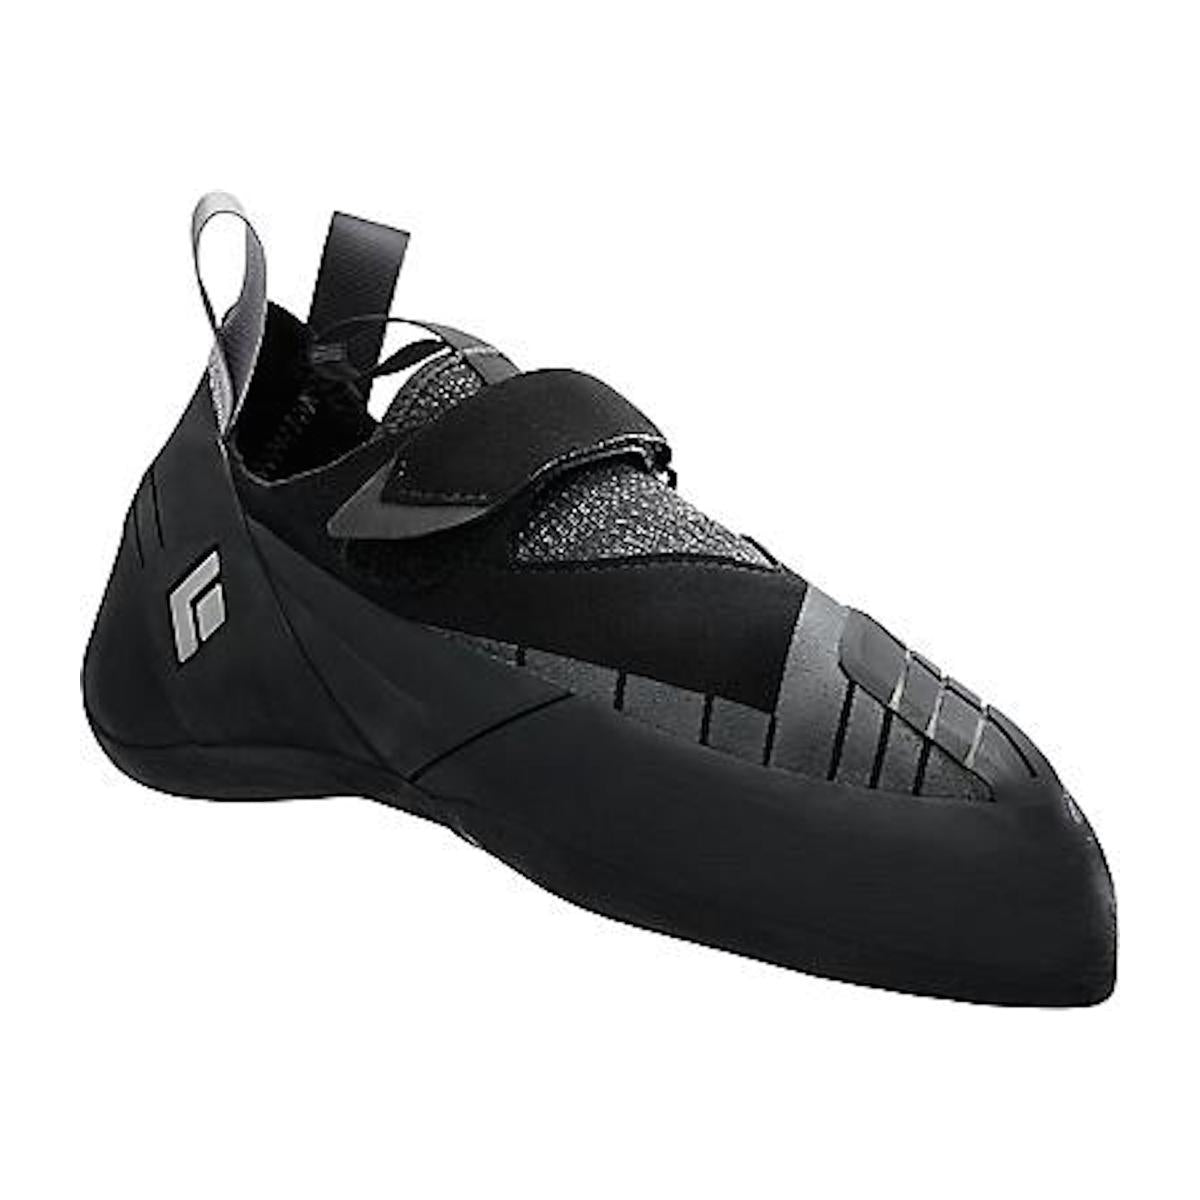 Black Diamond Shadow Men's Climbing Shoes